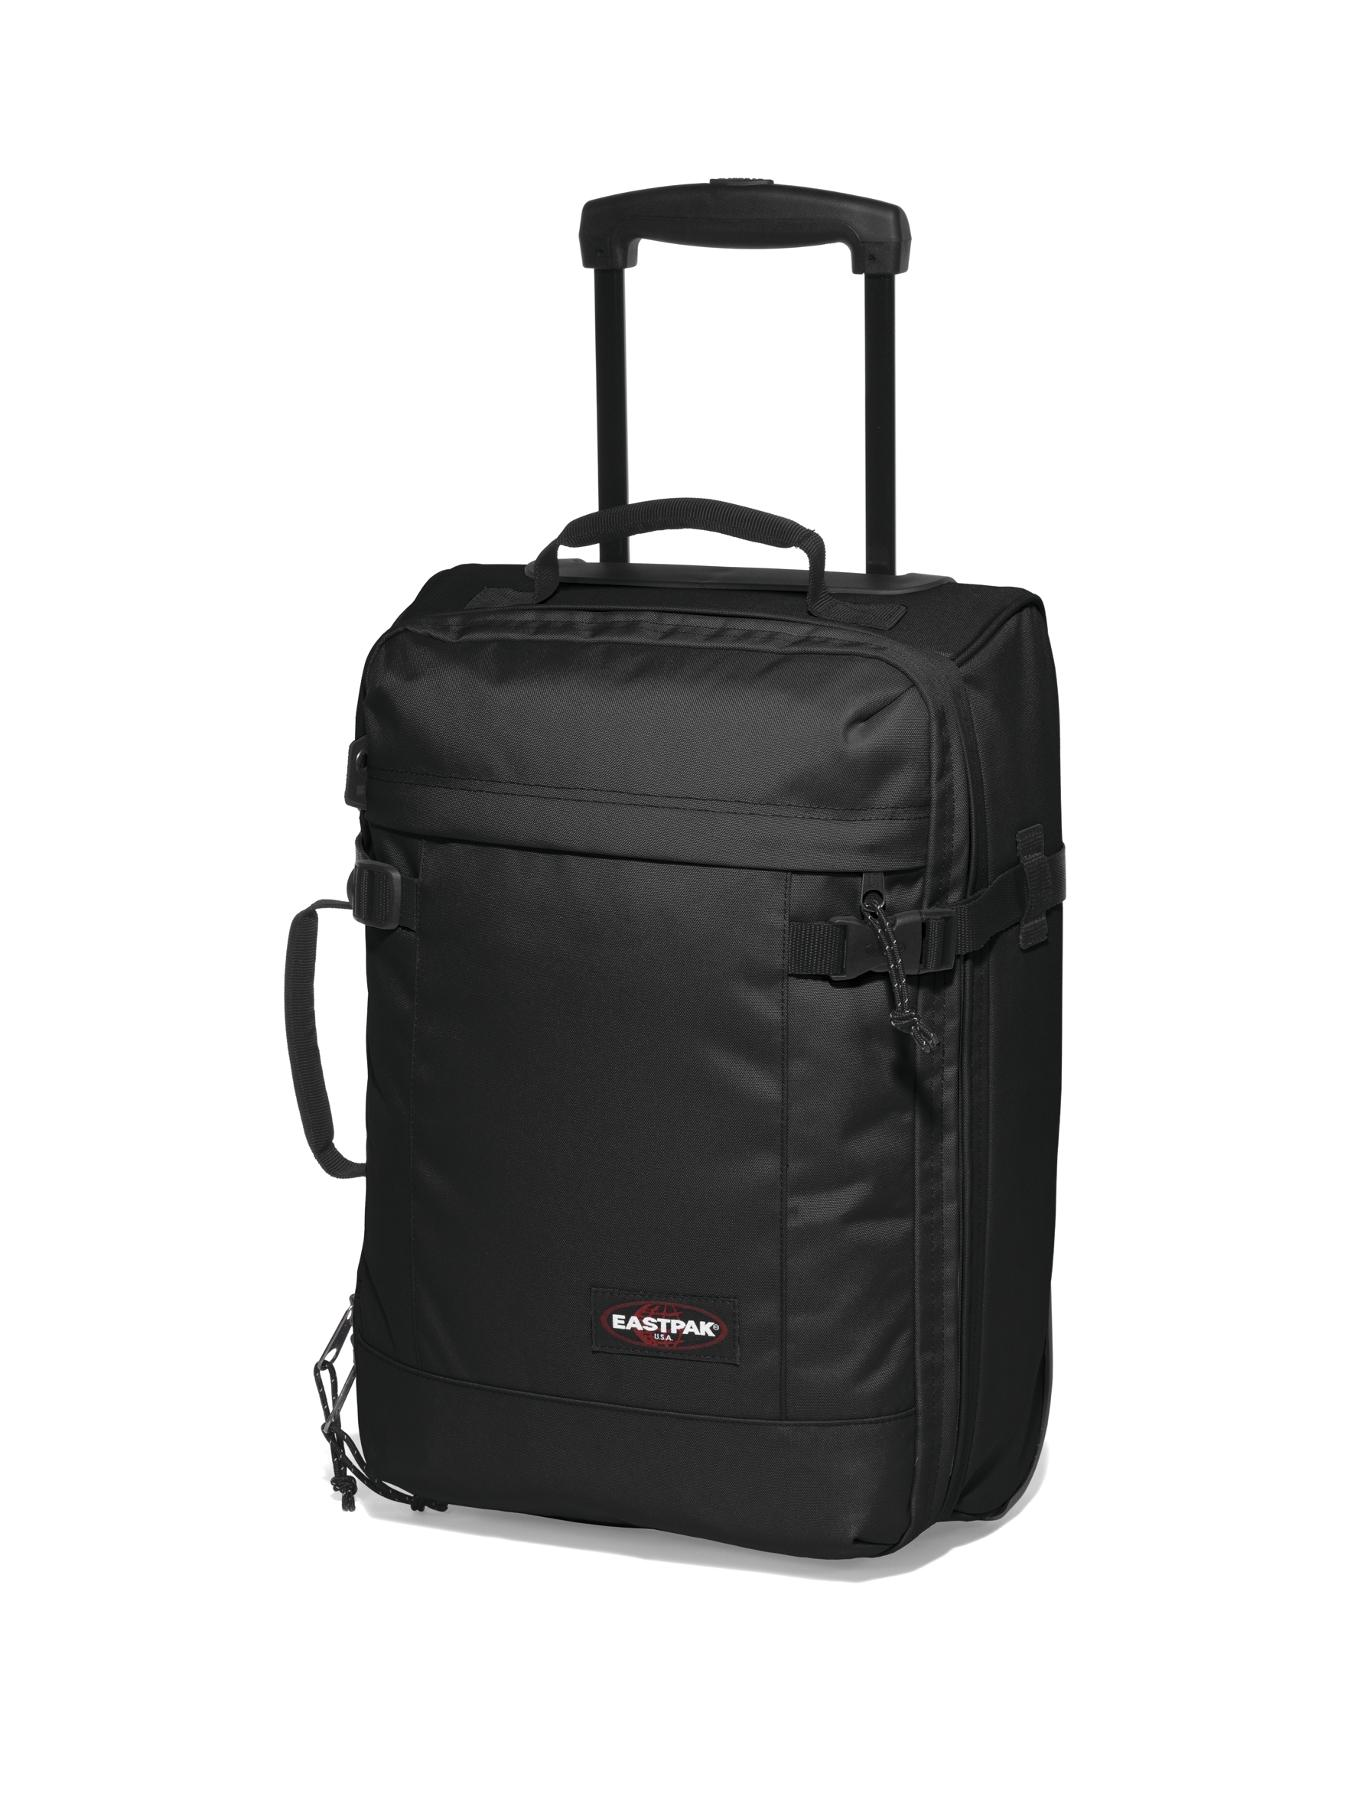 Transfer XS Split Wheeled Luggage